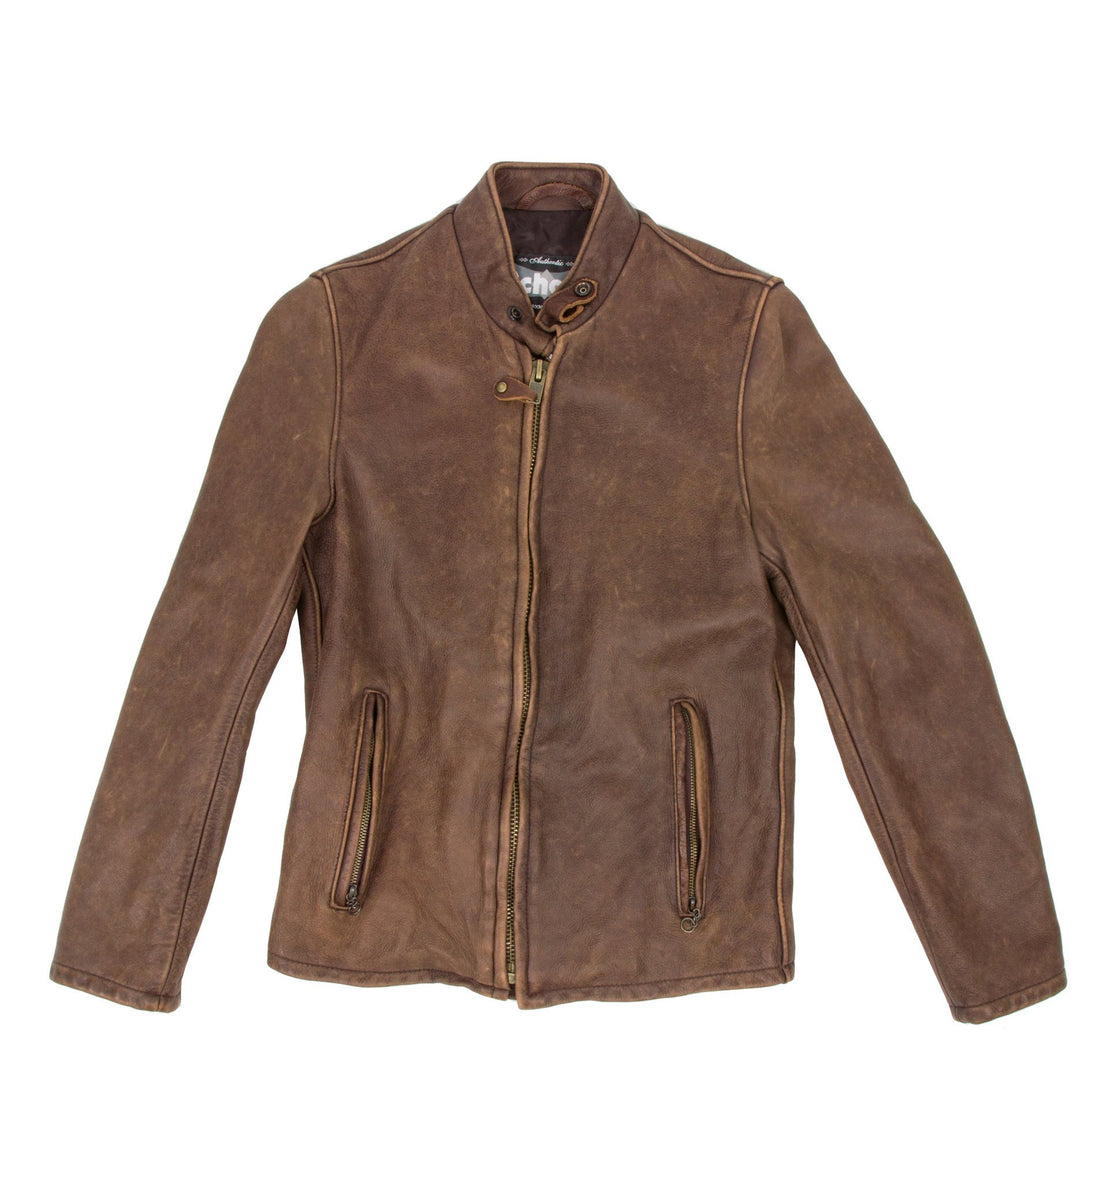 Schott Vintaged Cowhide Cafe Racer Leather Jacket - Apparel: Men's: Outerwear - Iron and Resin